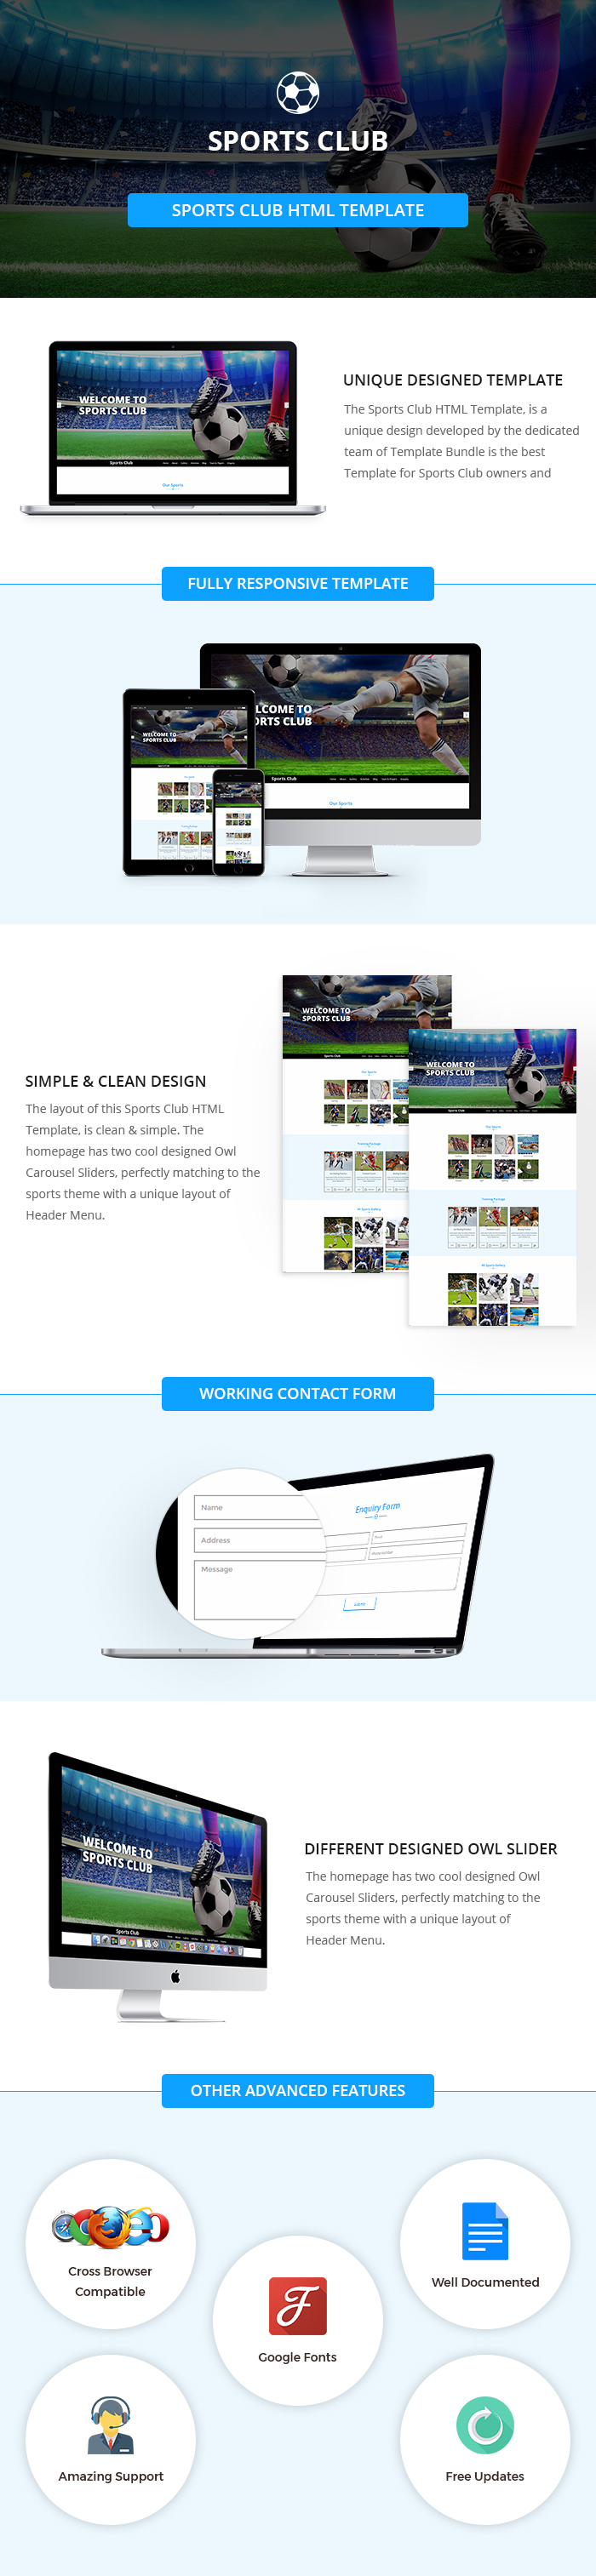 Sports Club HTML Website Templates